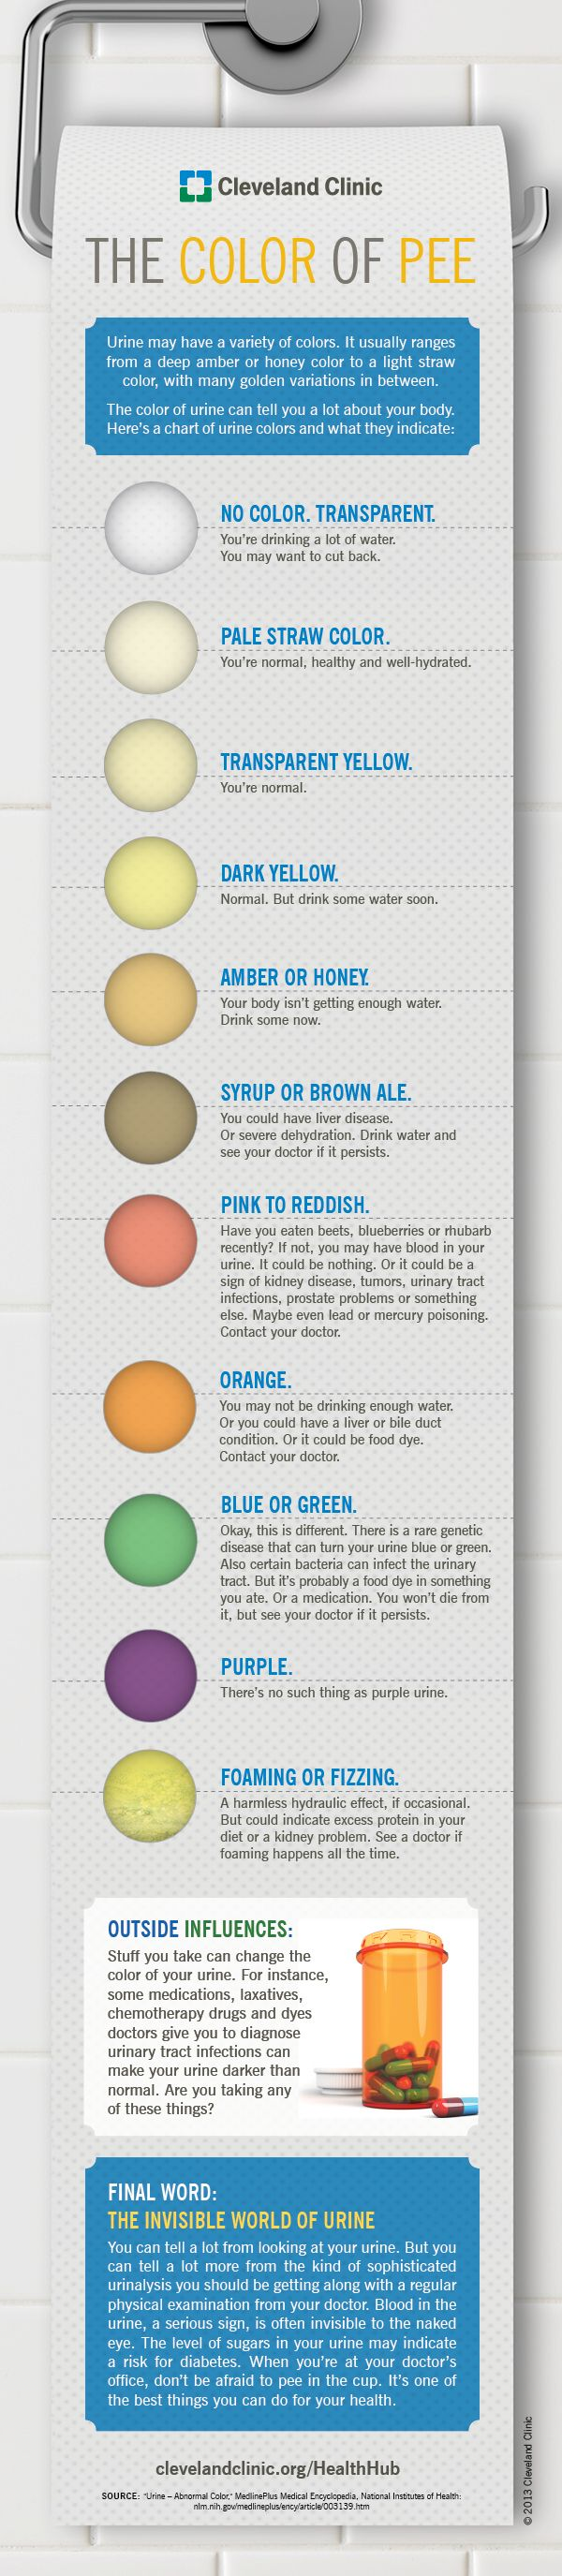 Health and Fitness FYI's: What Does Your Urine Color Say About You